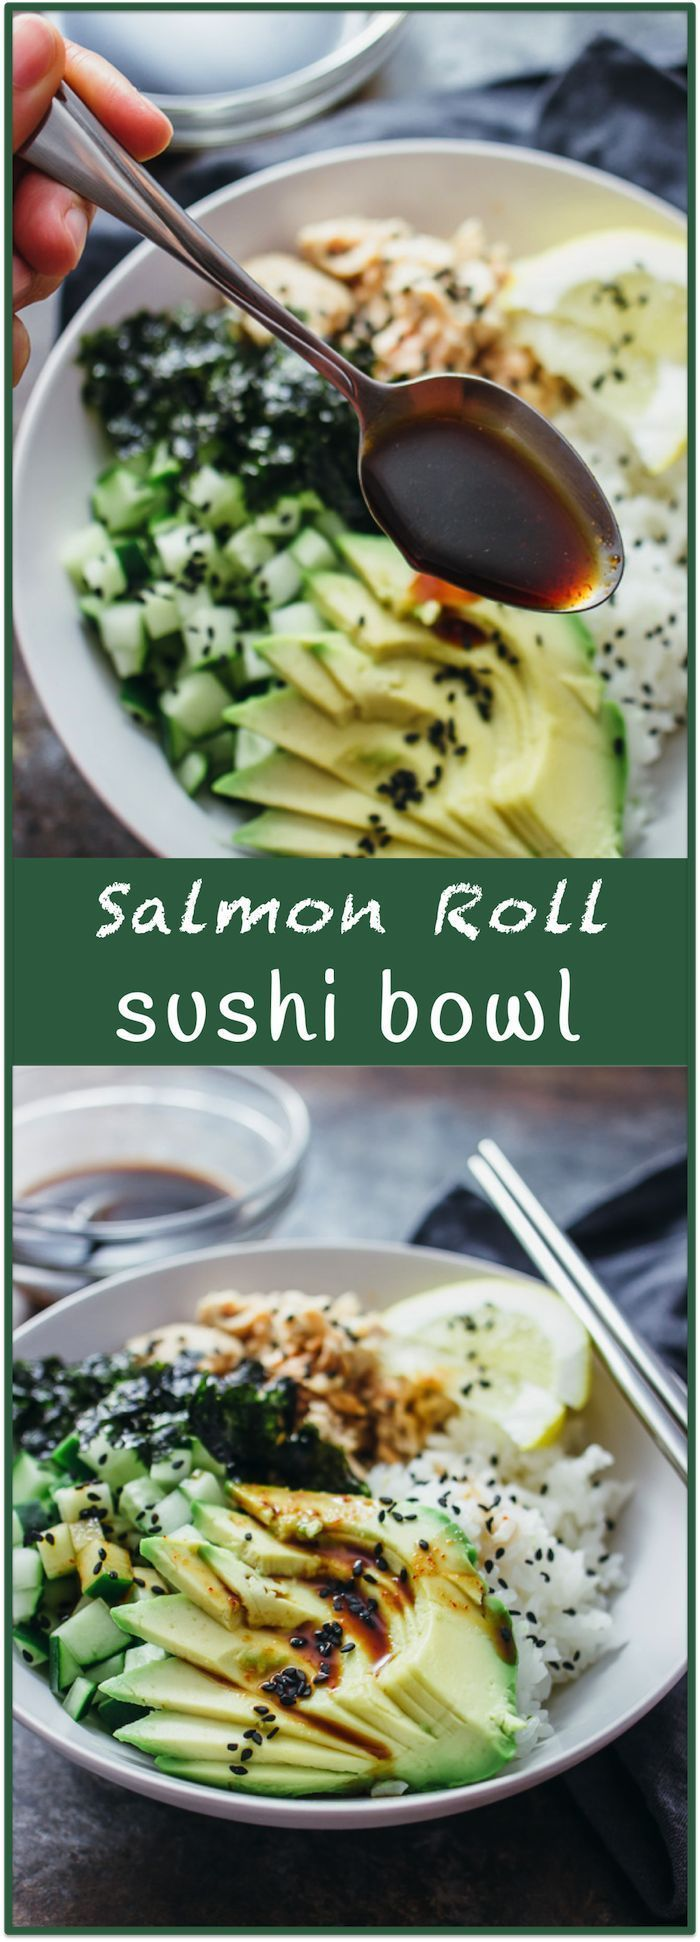 Salmon roll sushi bowl - Imagine your favorite sushi roll (California roll? Tuna roll? Dynamite roll?) — in a bowl. Almost everything tastes better in bowl form (think burritos) and sushi is no exception. This delicious sushi bowl recipe includes salmon, sliced avocado, diced cucumber, crumbled seaweed, and toasted sesame seeds. Best yet, there's an easy-to-make spicy dressing made of soy sauce, sriracha, and a hint of lemon. - savorytooth.com